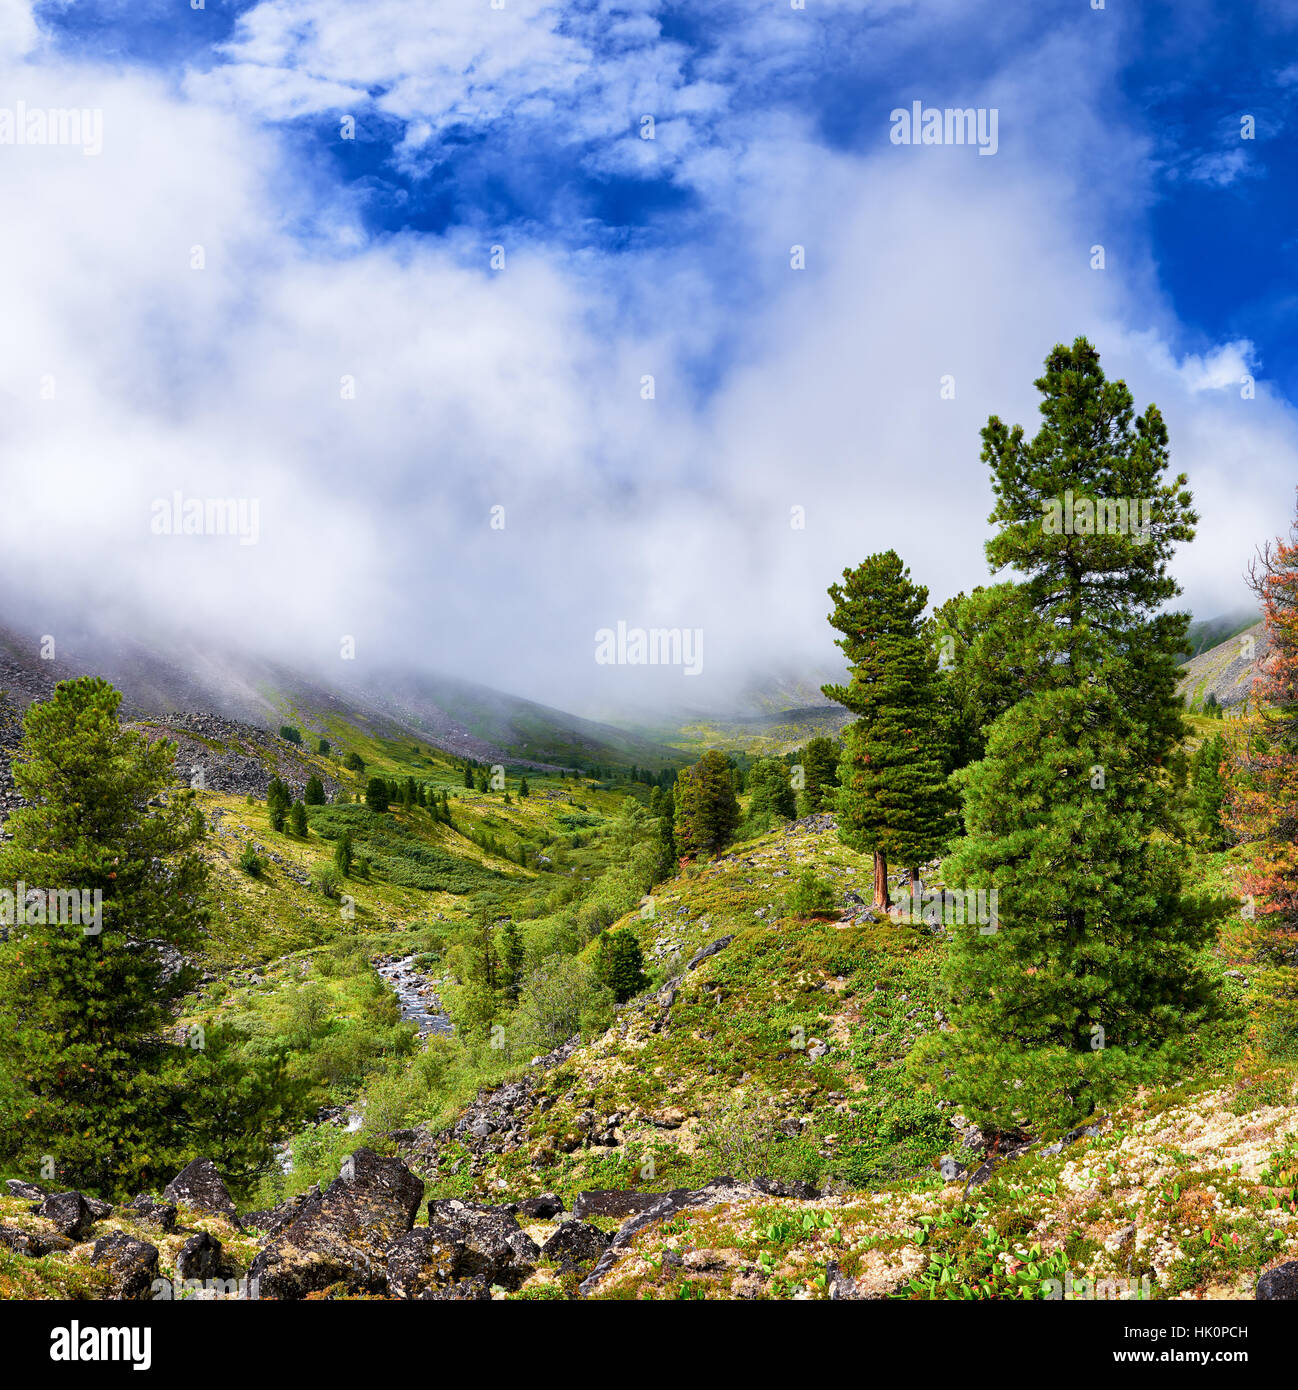 Rising mist over valley of mountain stream. Forest near border of tundra. Eastern Sayan. Siberia. Russia - Stock Image